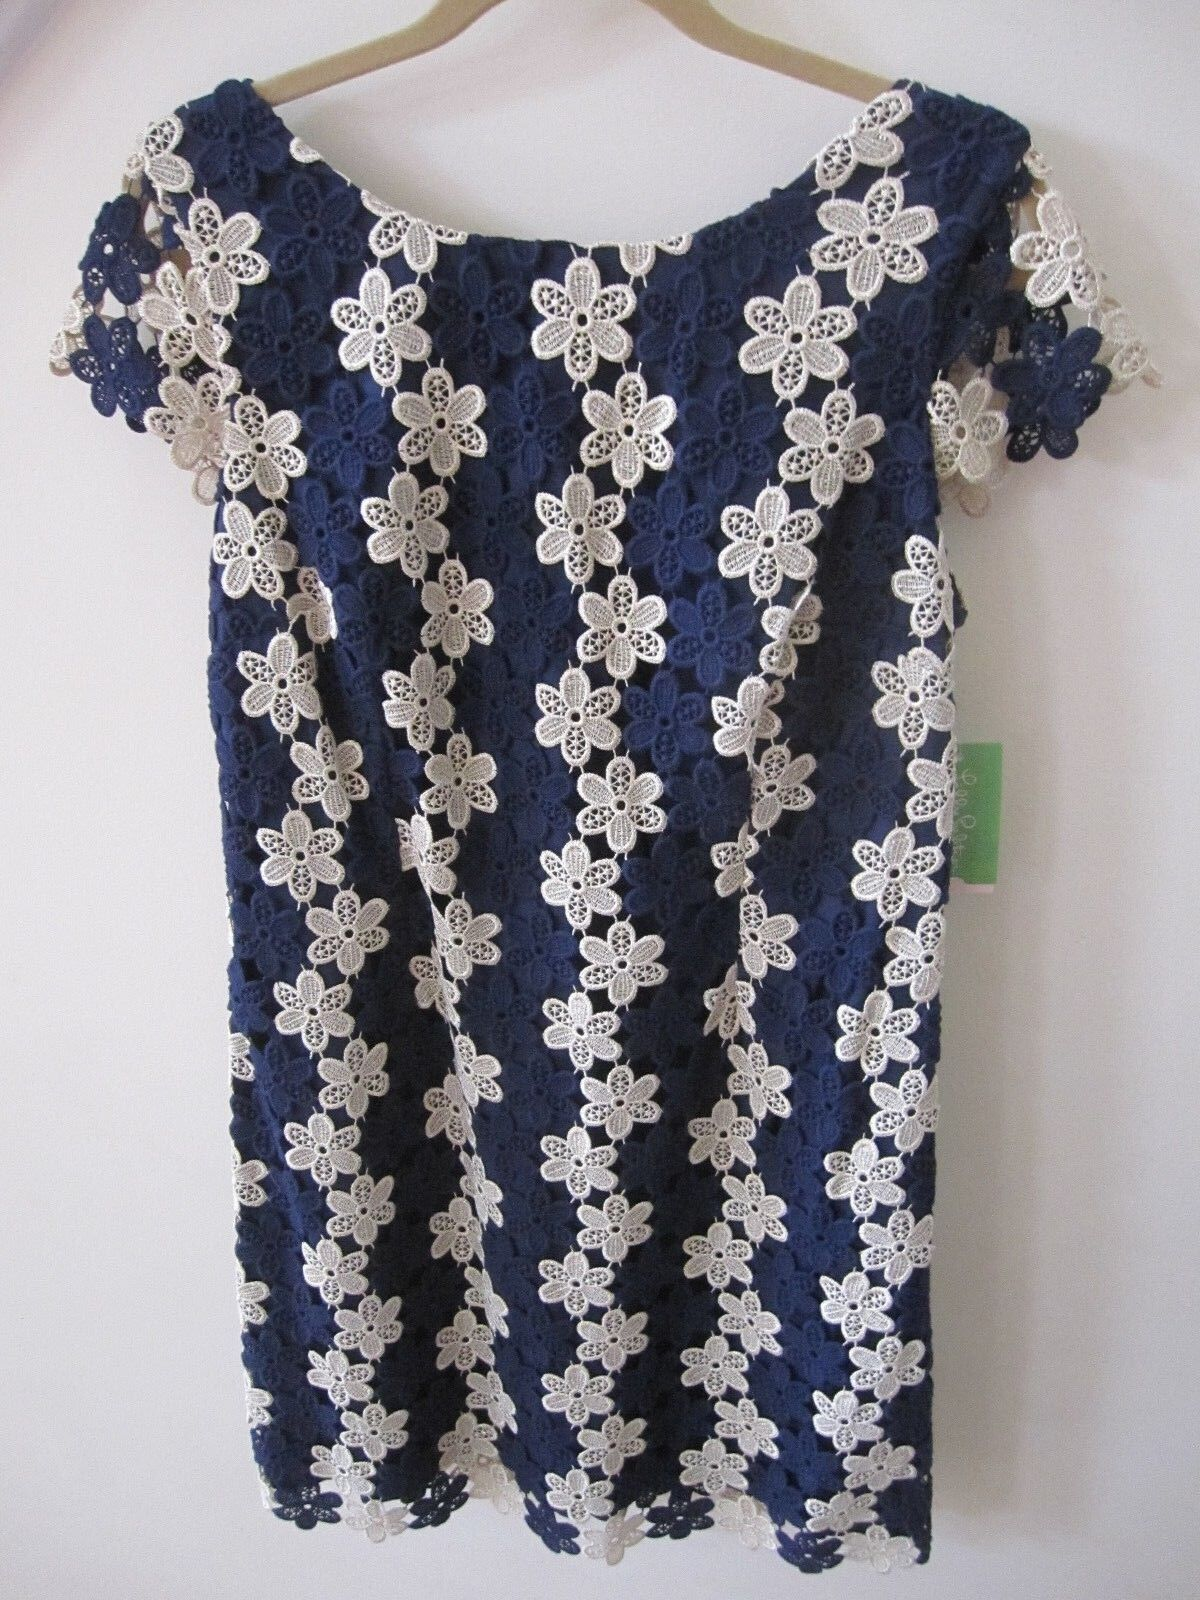 378 NWT 14 Lilly Pulitzer Barbara True Navy Classic Petal Lace Dress NEW XL